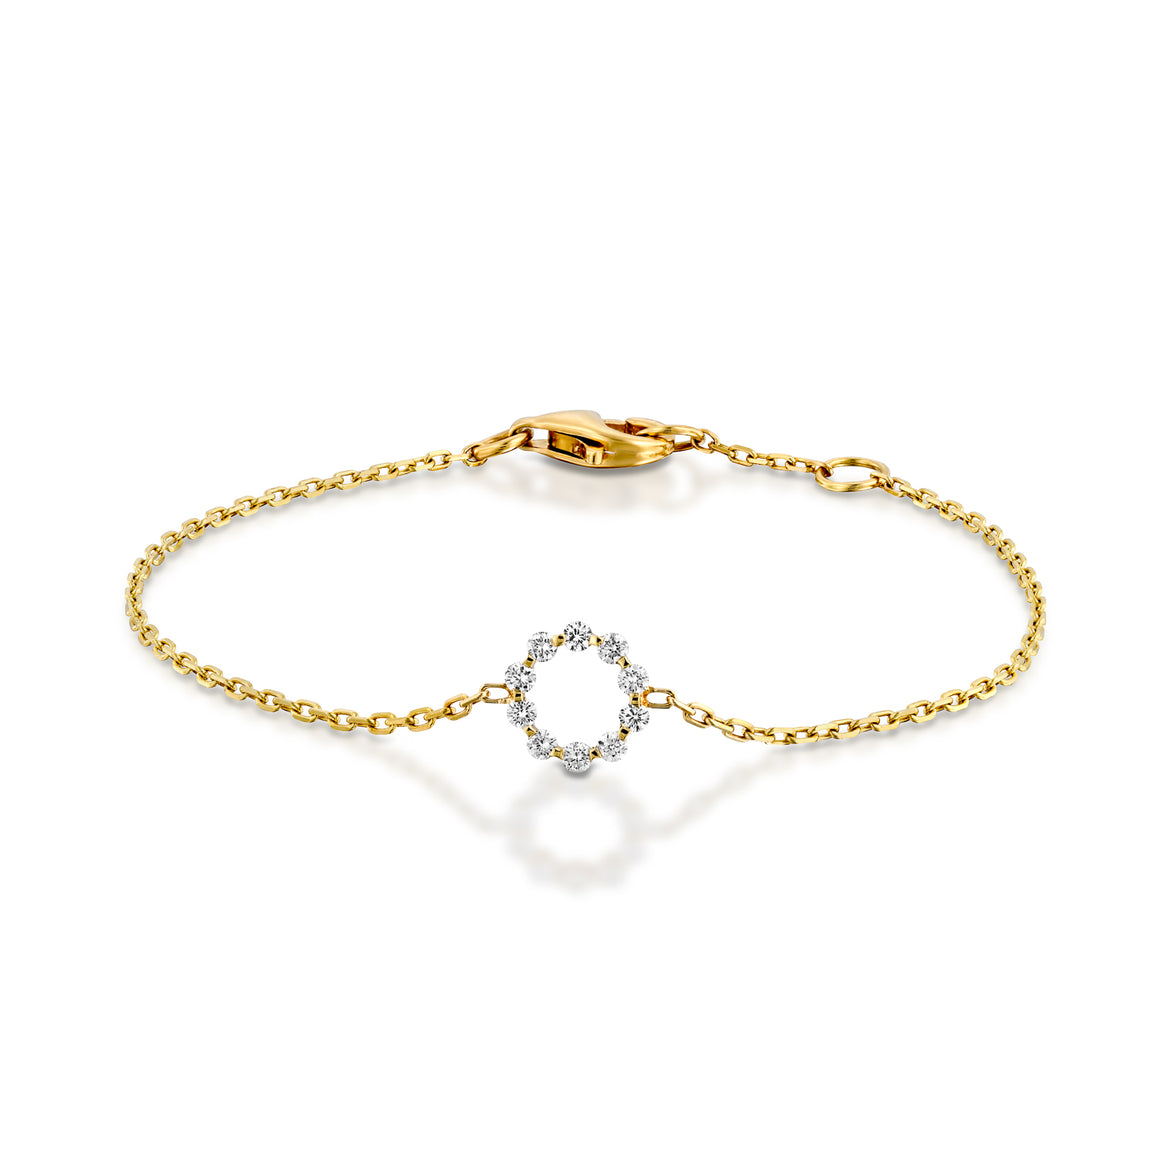 Bridal wedding bracelet in diamond and 18k gold